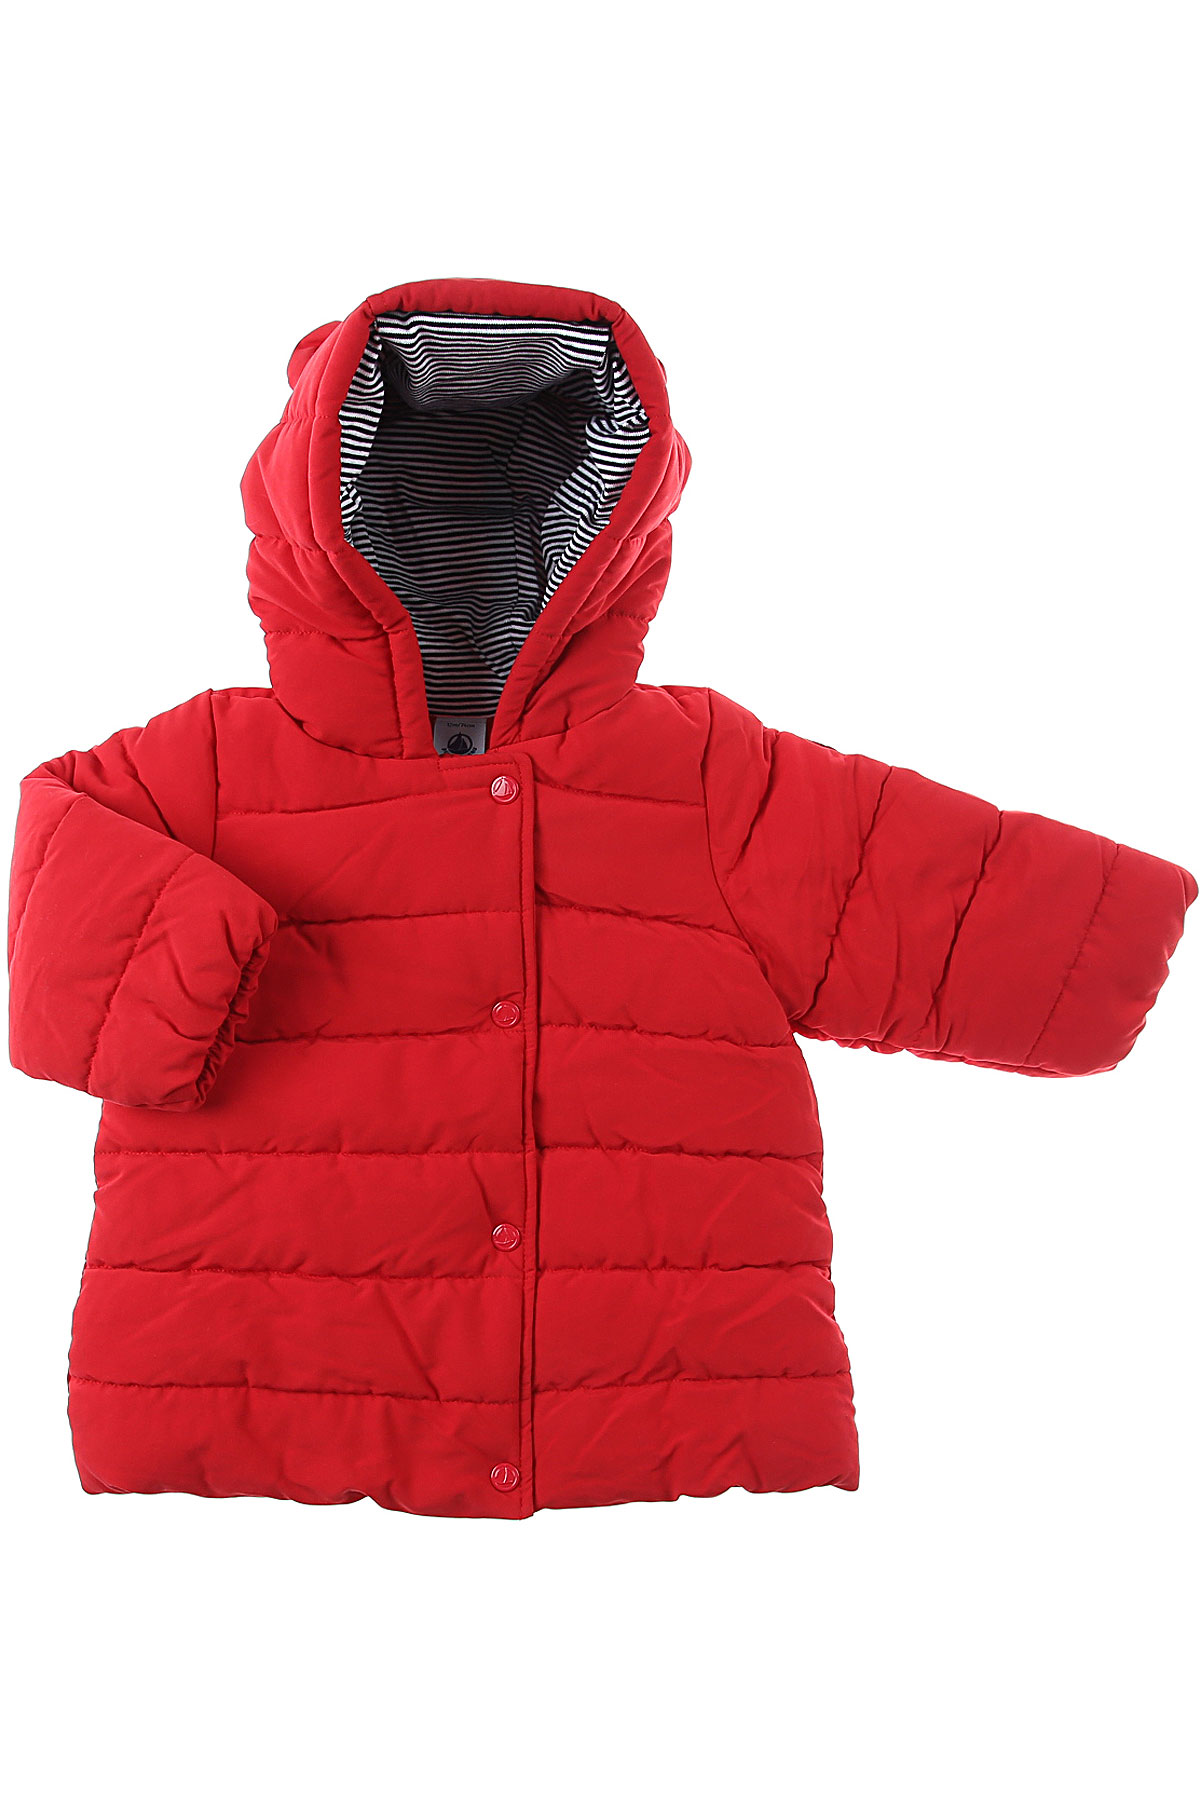 Petit Bateau Baby Down Jacket for Girls On Sale, Red, polyester, 2019, 12M 18M 6M